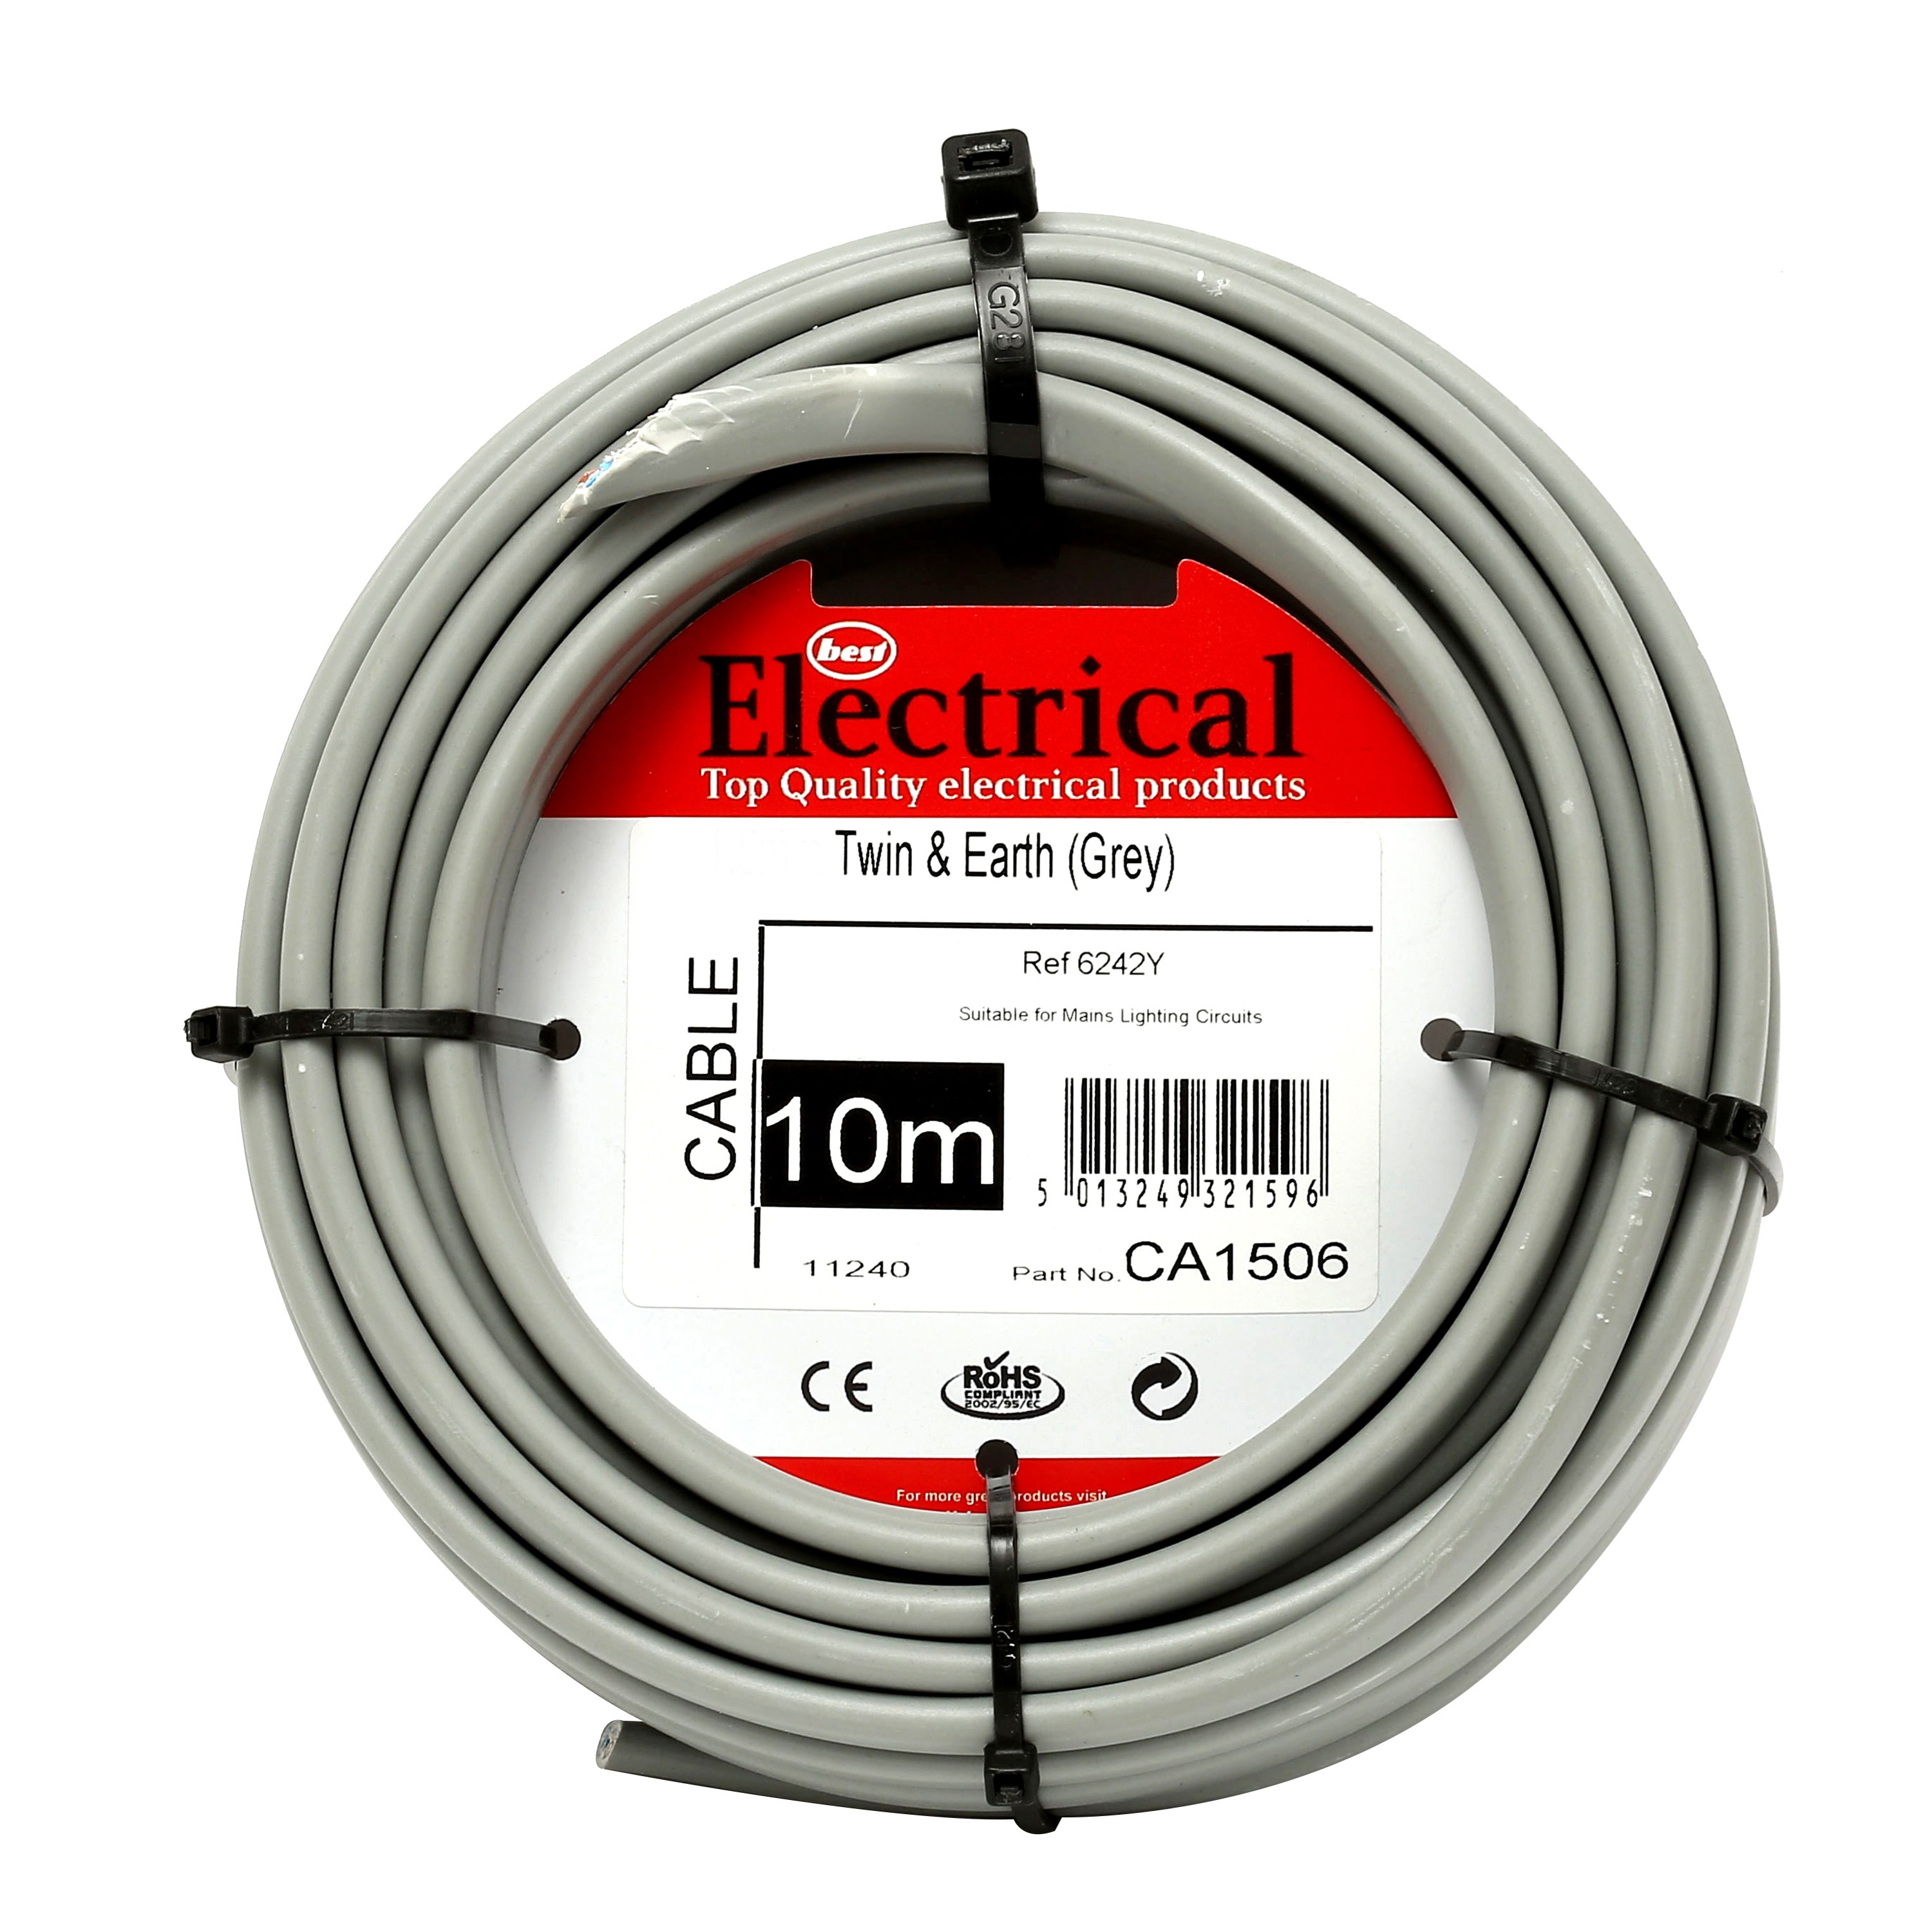 Best Electrical Twin Earth Grey Wiring Cable 25mm Diy Shed Wire